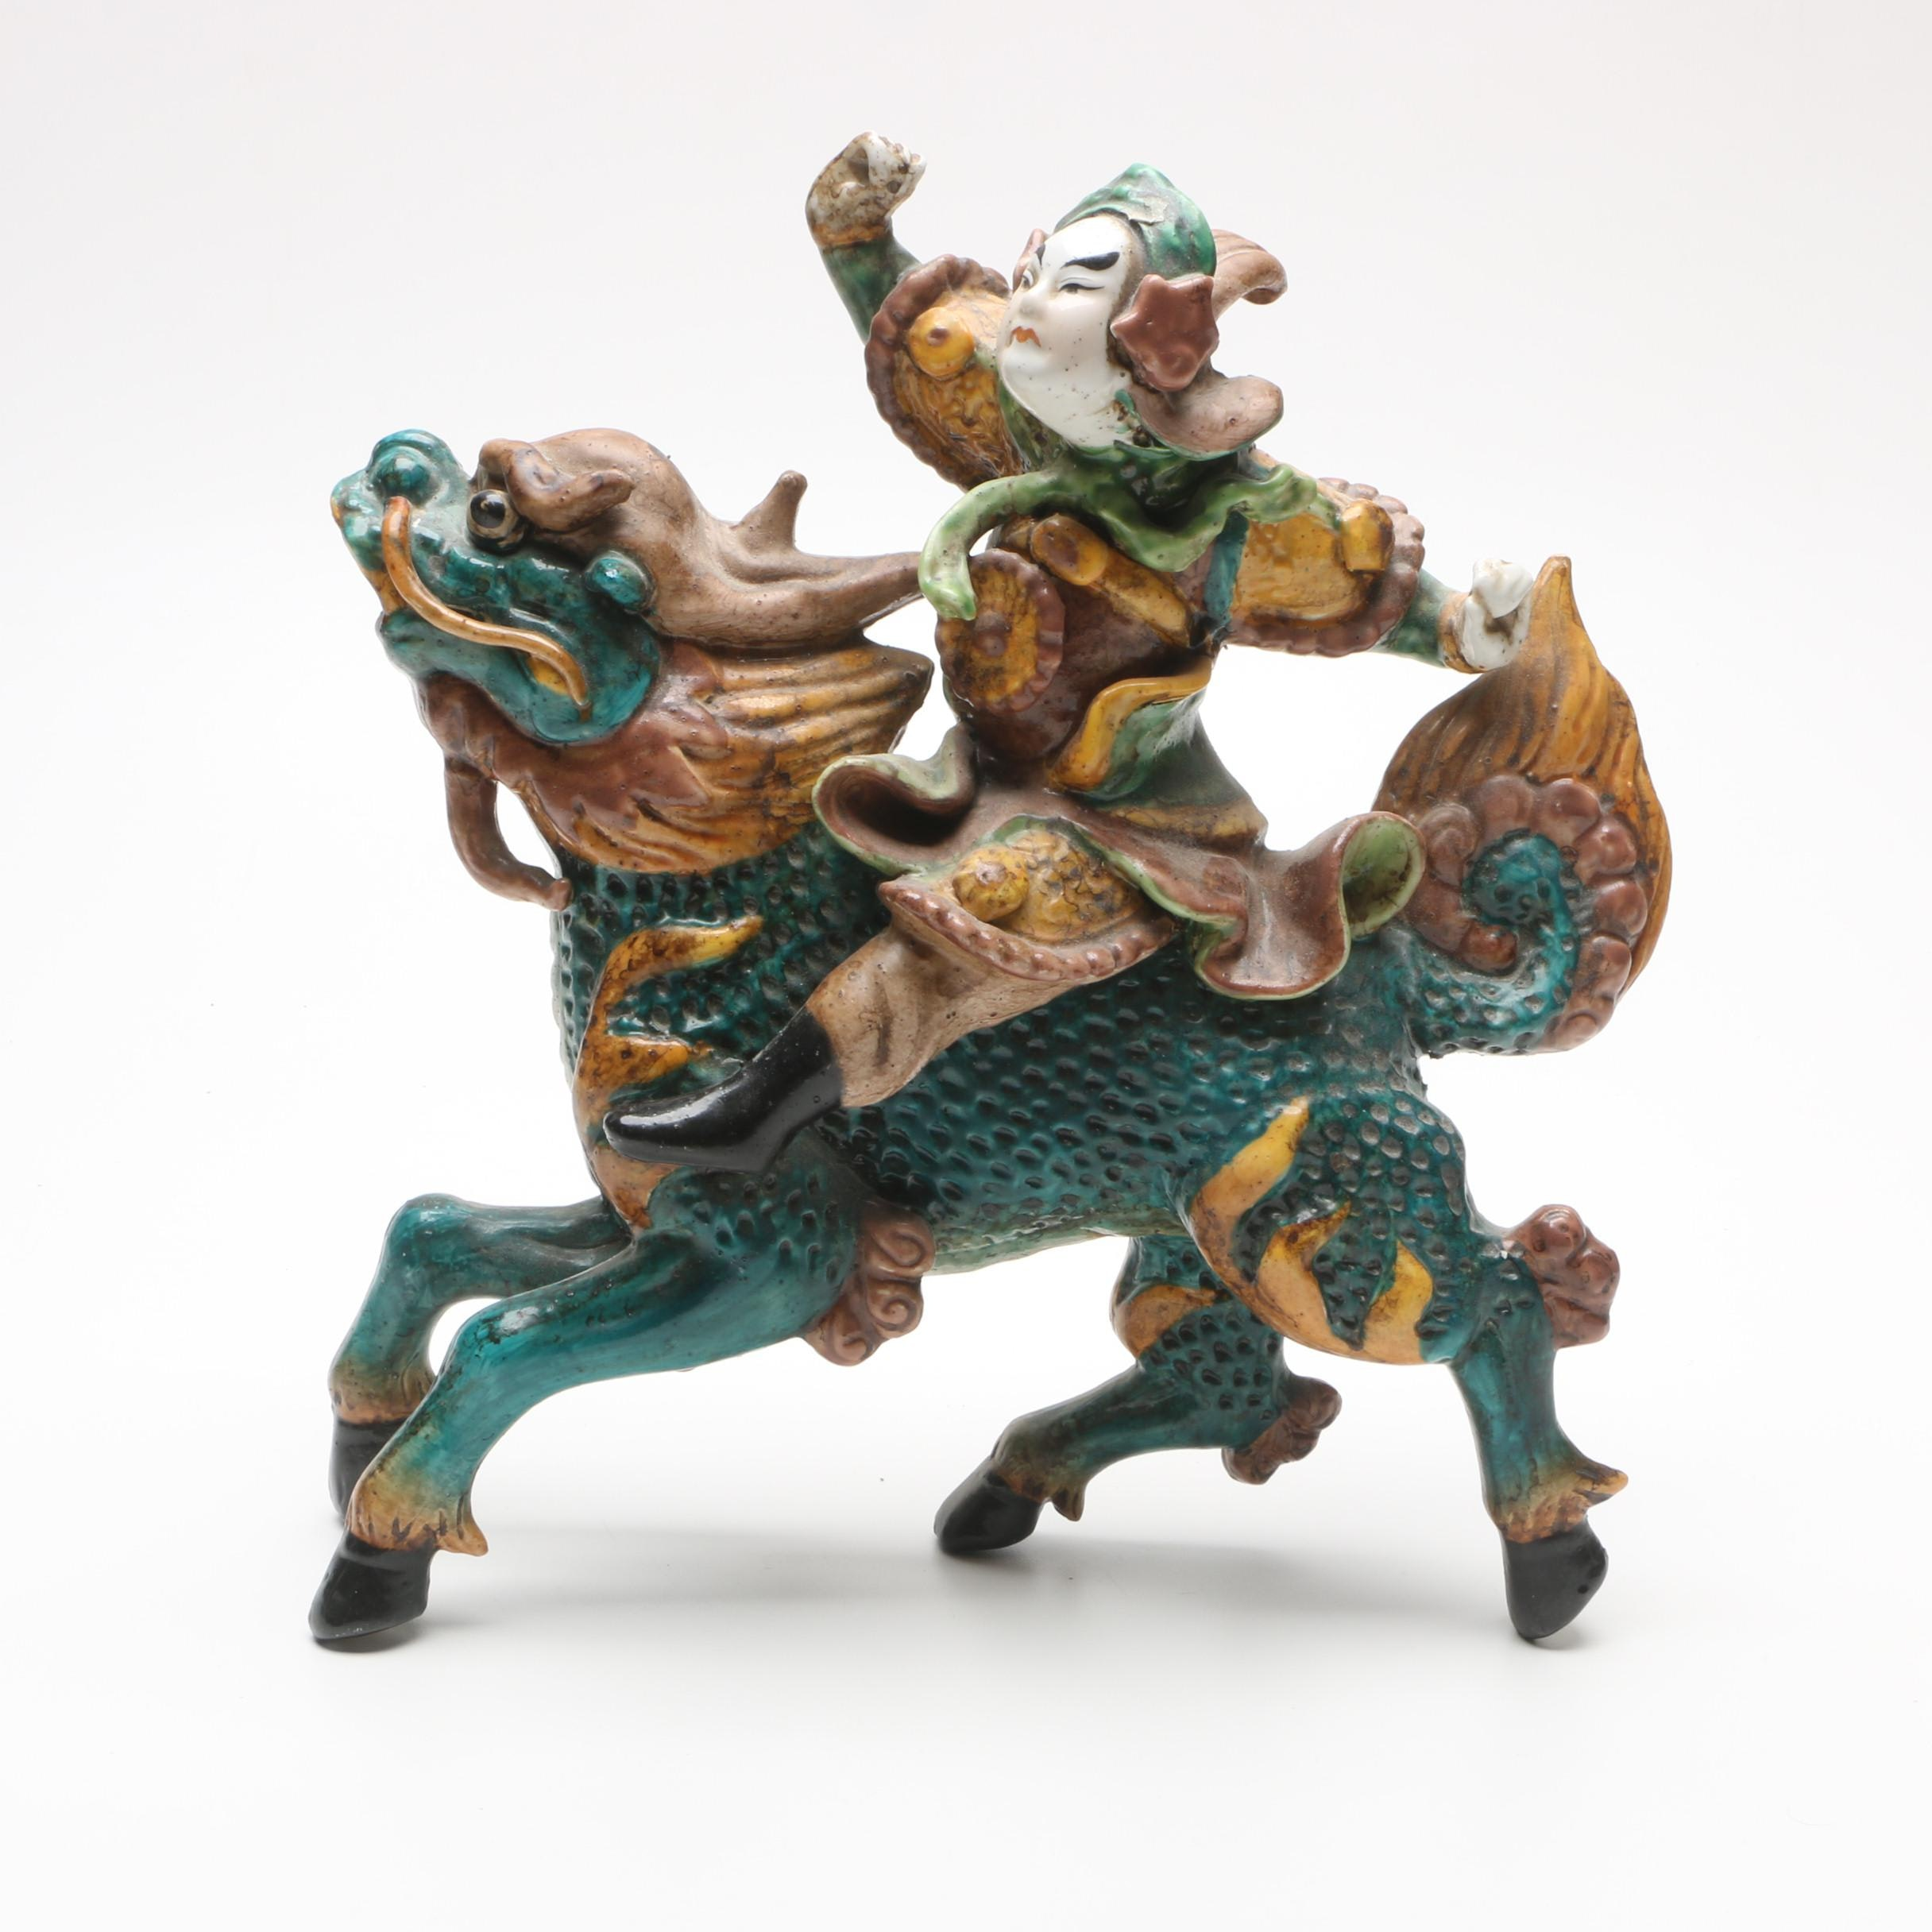 Chinese Ceramic Figurine Featuring Man Riding Mythical Qilin